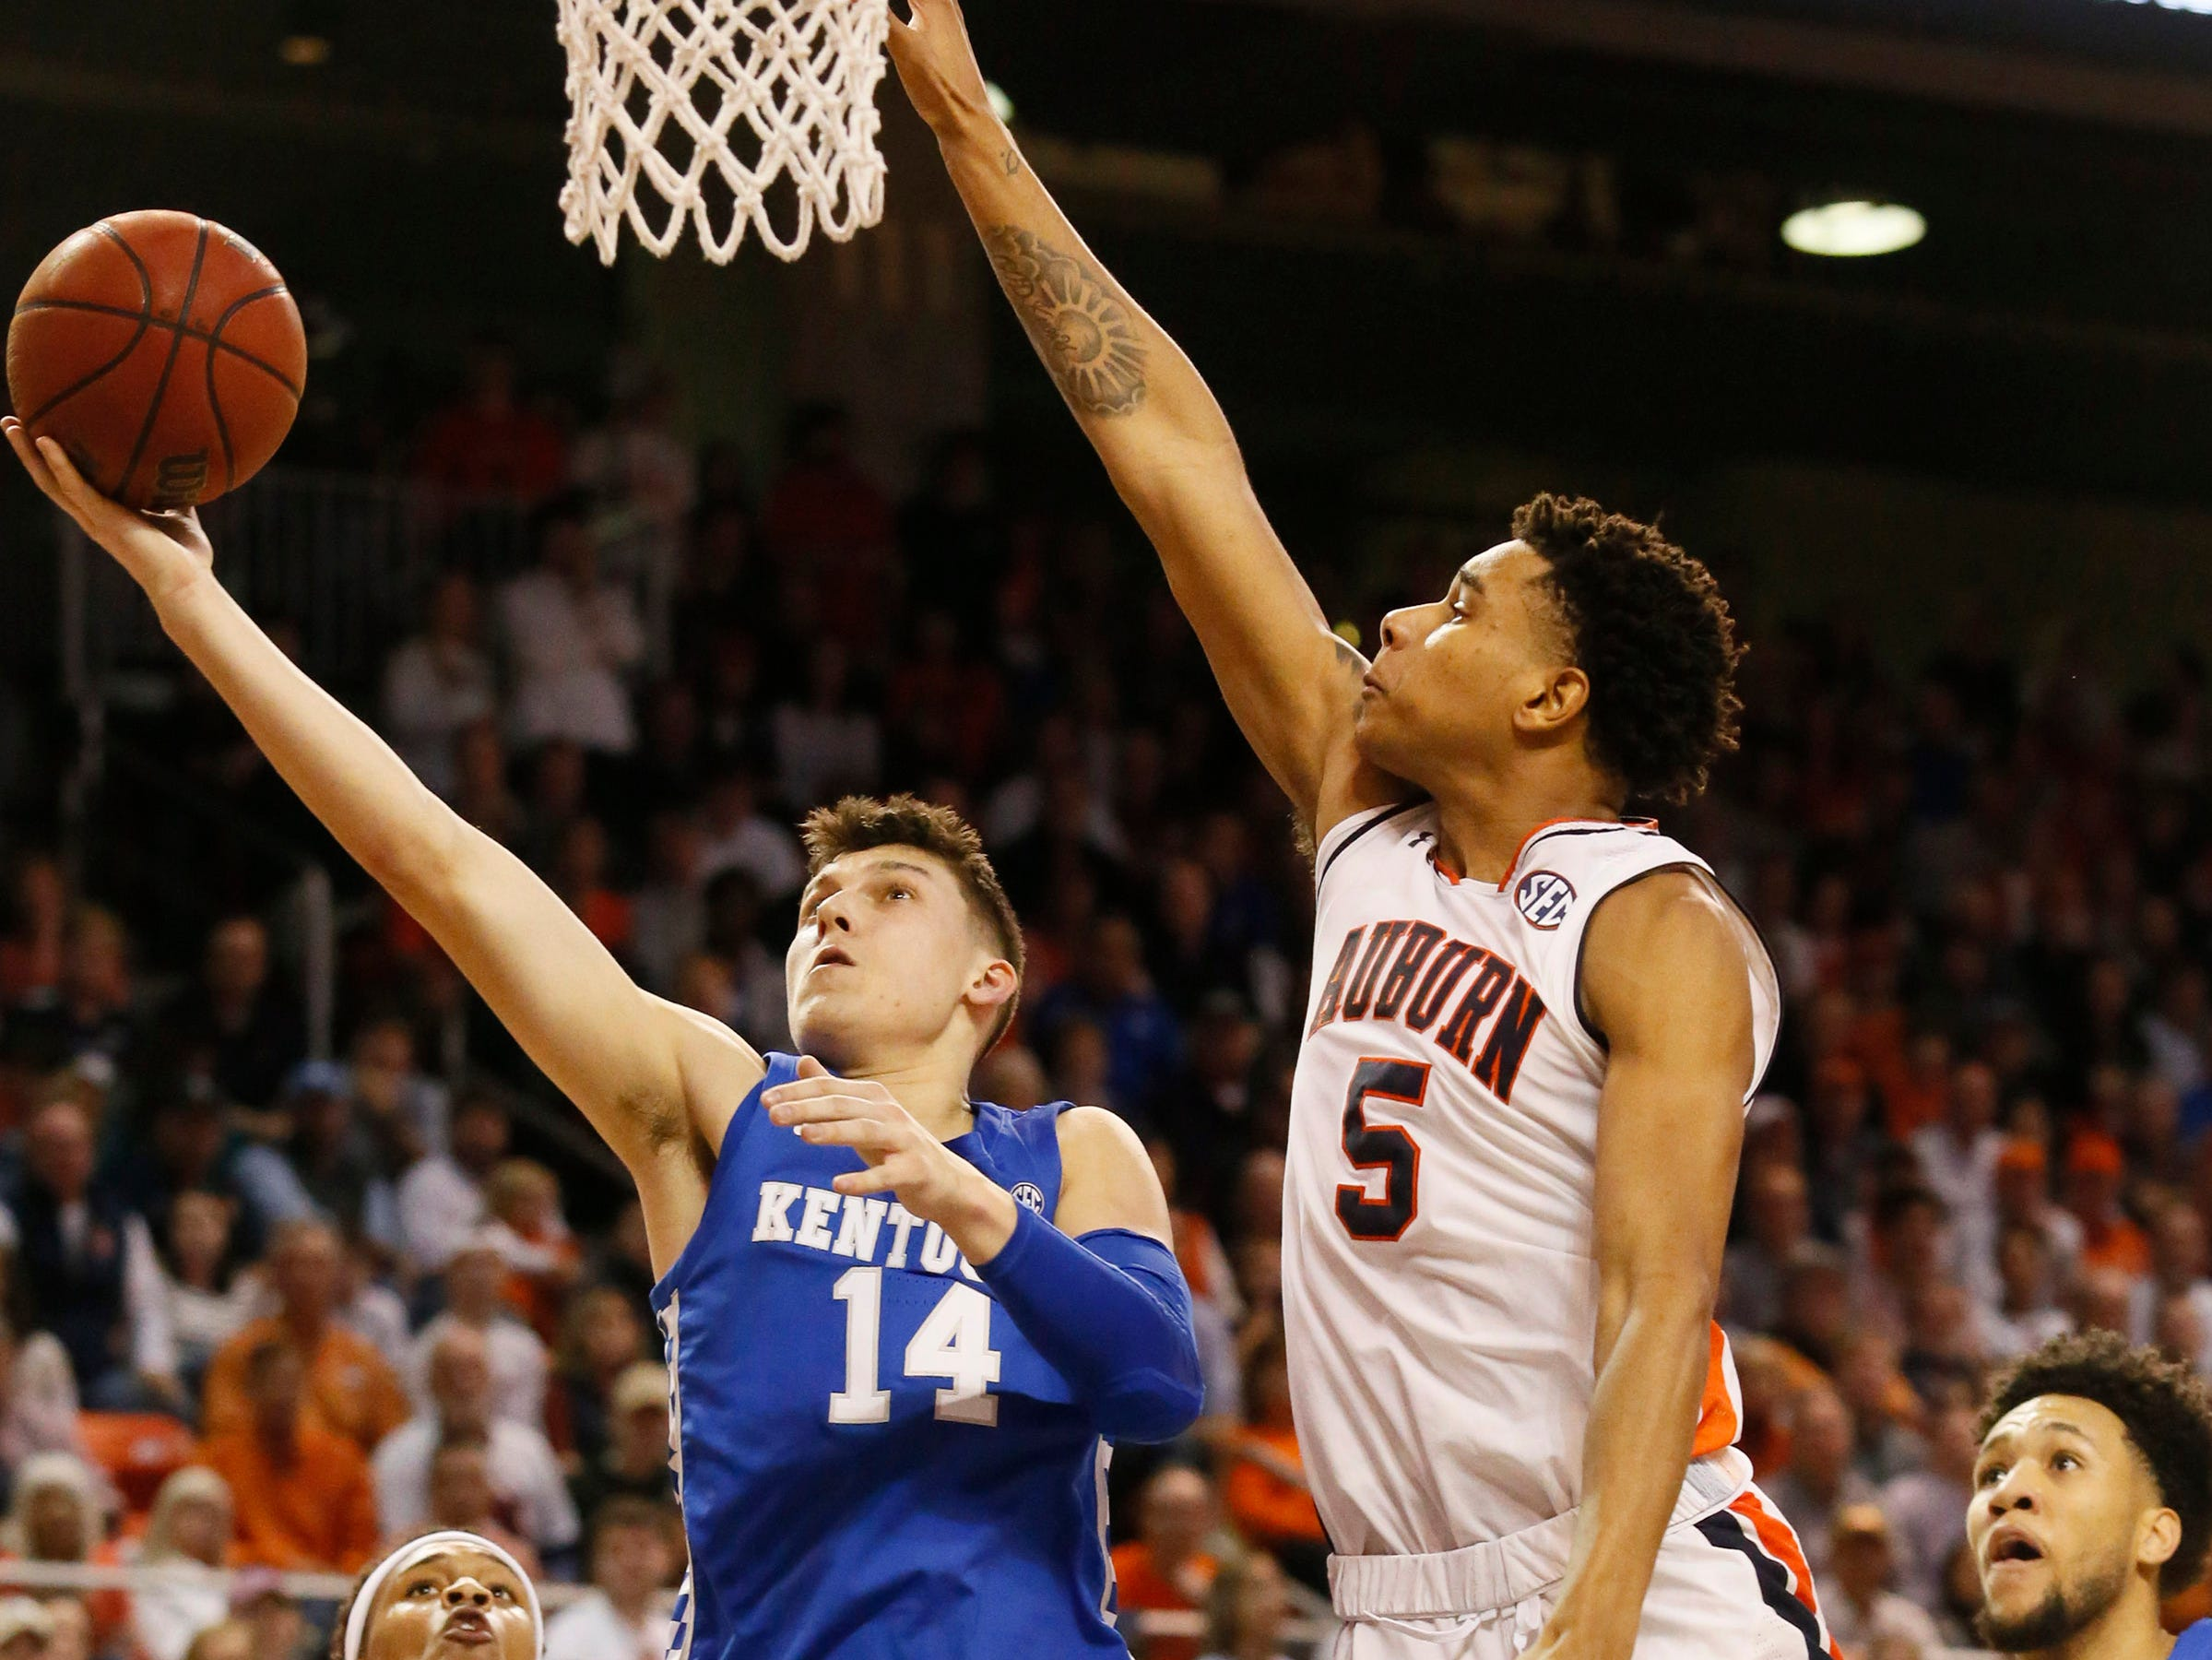 Jan 19, 2019; Auburn, AL, USA;  Kentucky Wildcats guard Tyler Herrd (14) takes a shot as Auburn Tigers forward Chuma Okeke (5) defends during the first half at Auburn Arena. Mandatory Credit: John Reed-USA TODAY Sports